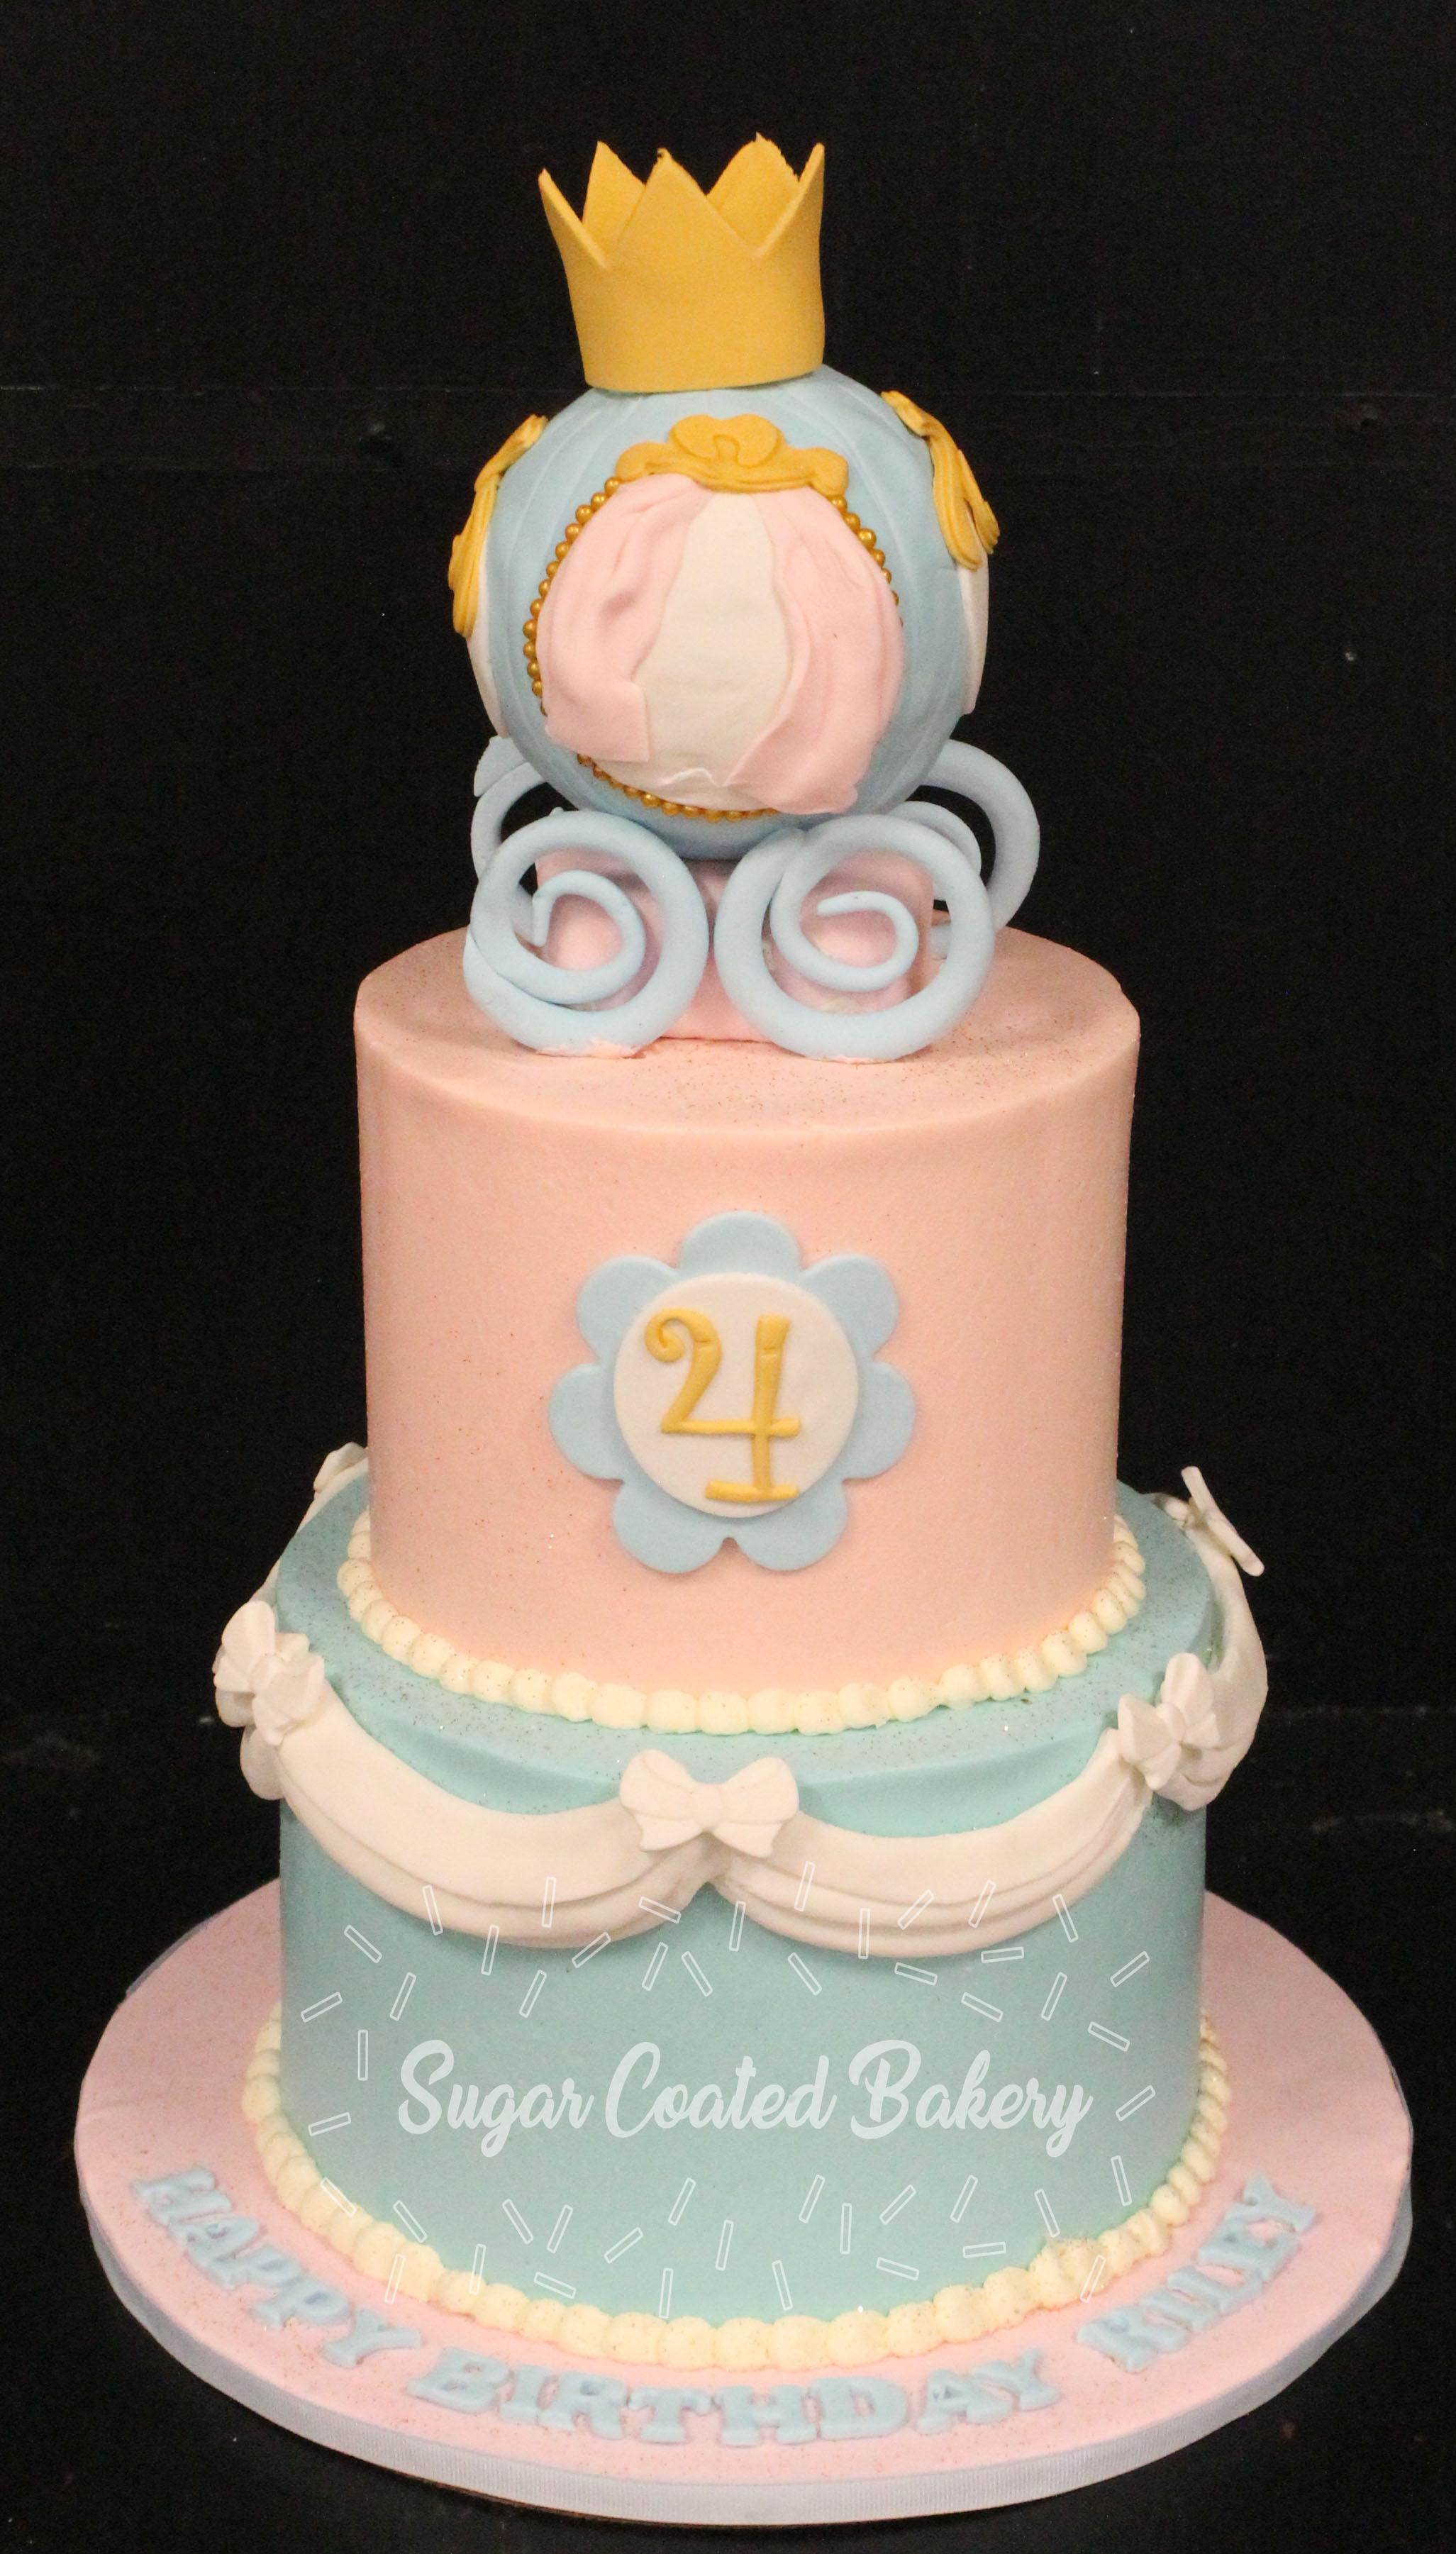 Cinderella Birthday Cakes Sugar Coated Bakery Lowell Baking Everyday Better